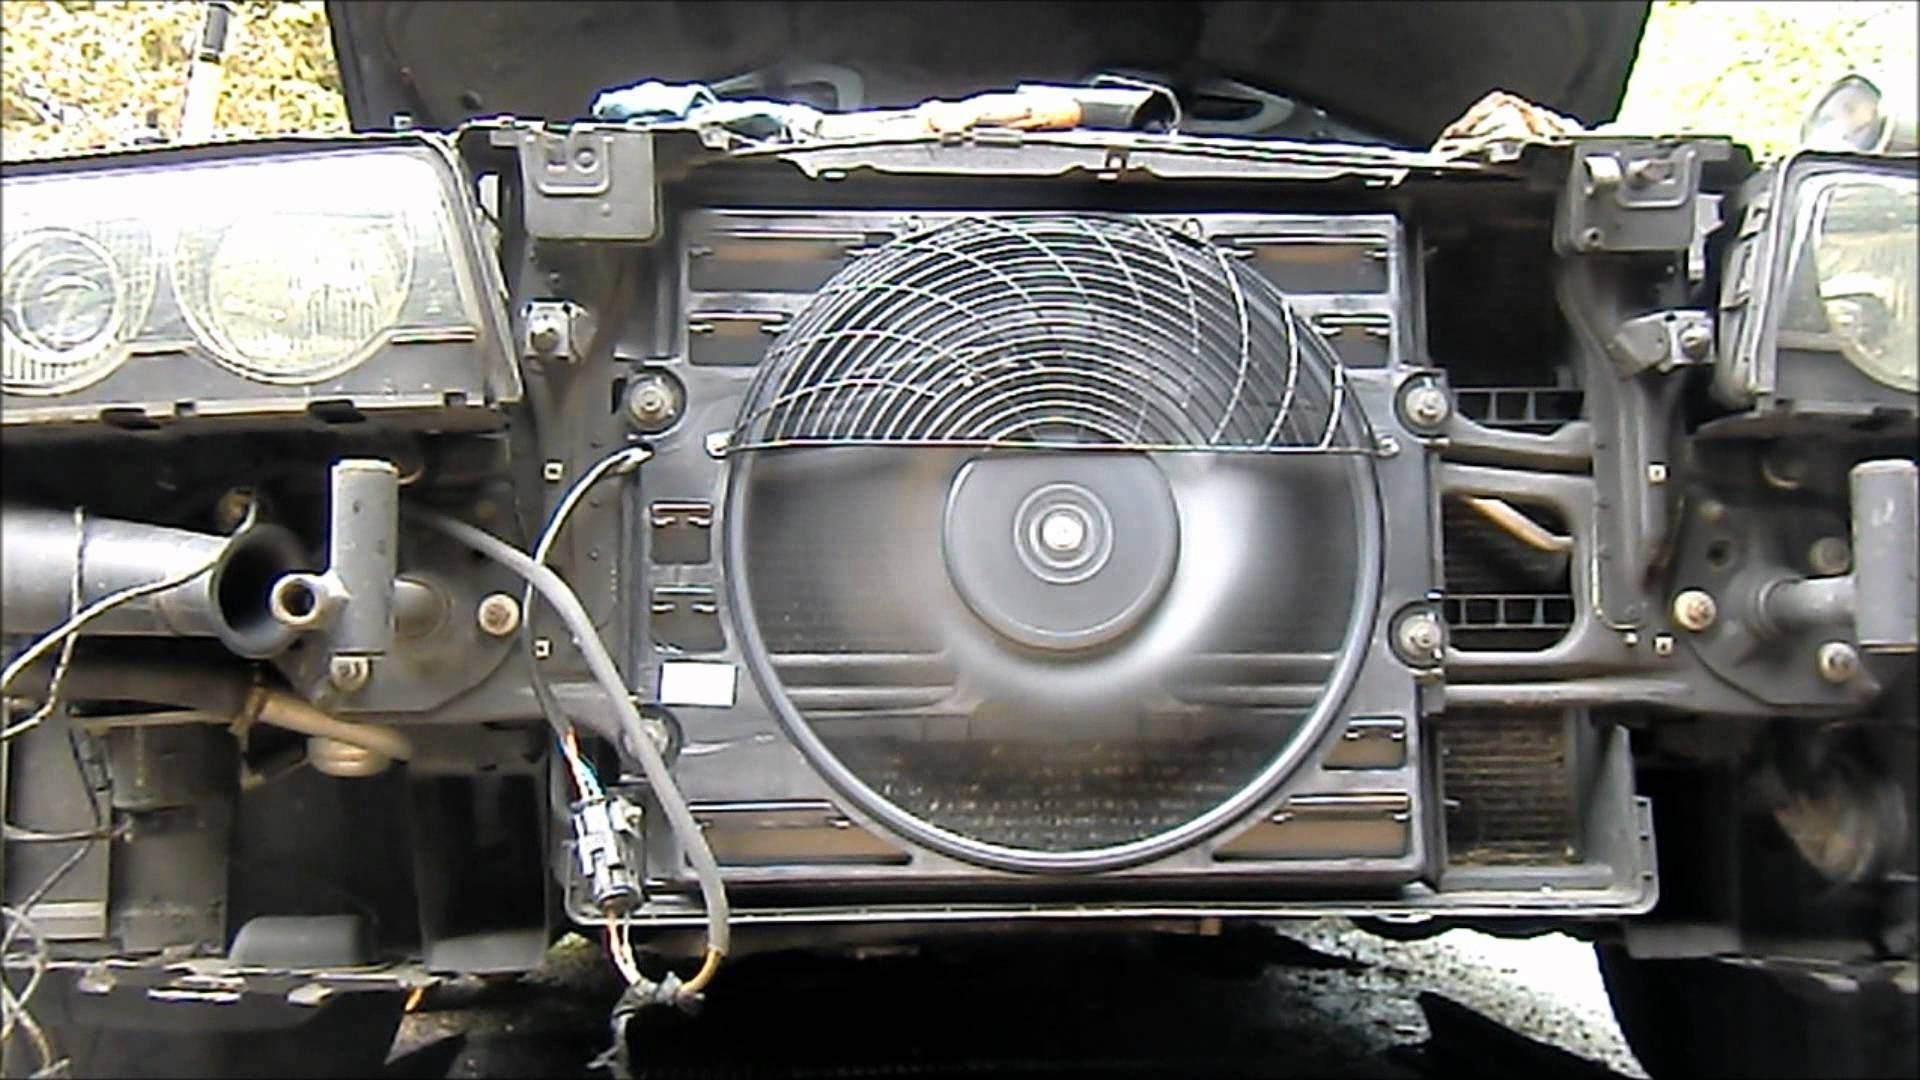 Bmw E39 Engine Diagram How to Diagnose Your Fan if It S In Working order for 10 1998 and Up Of Bmw E39 Engine Diagram